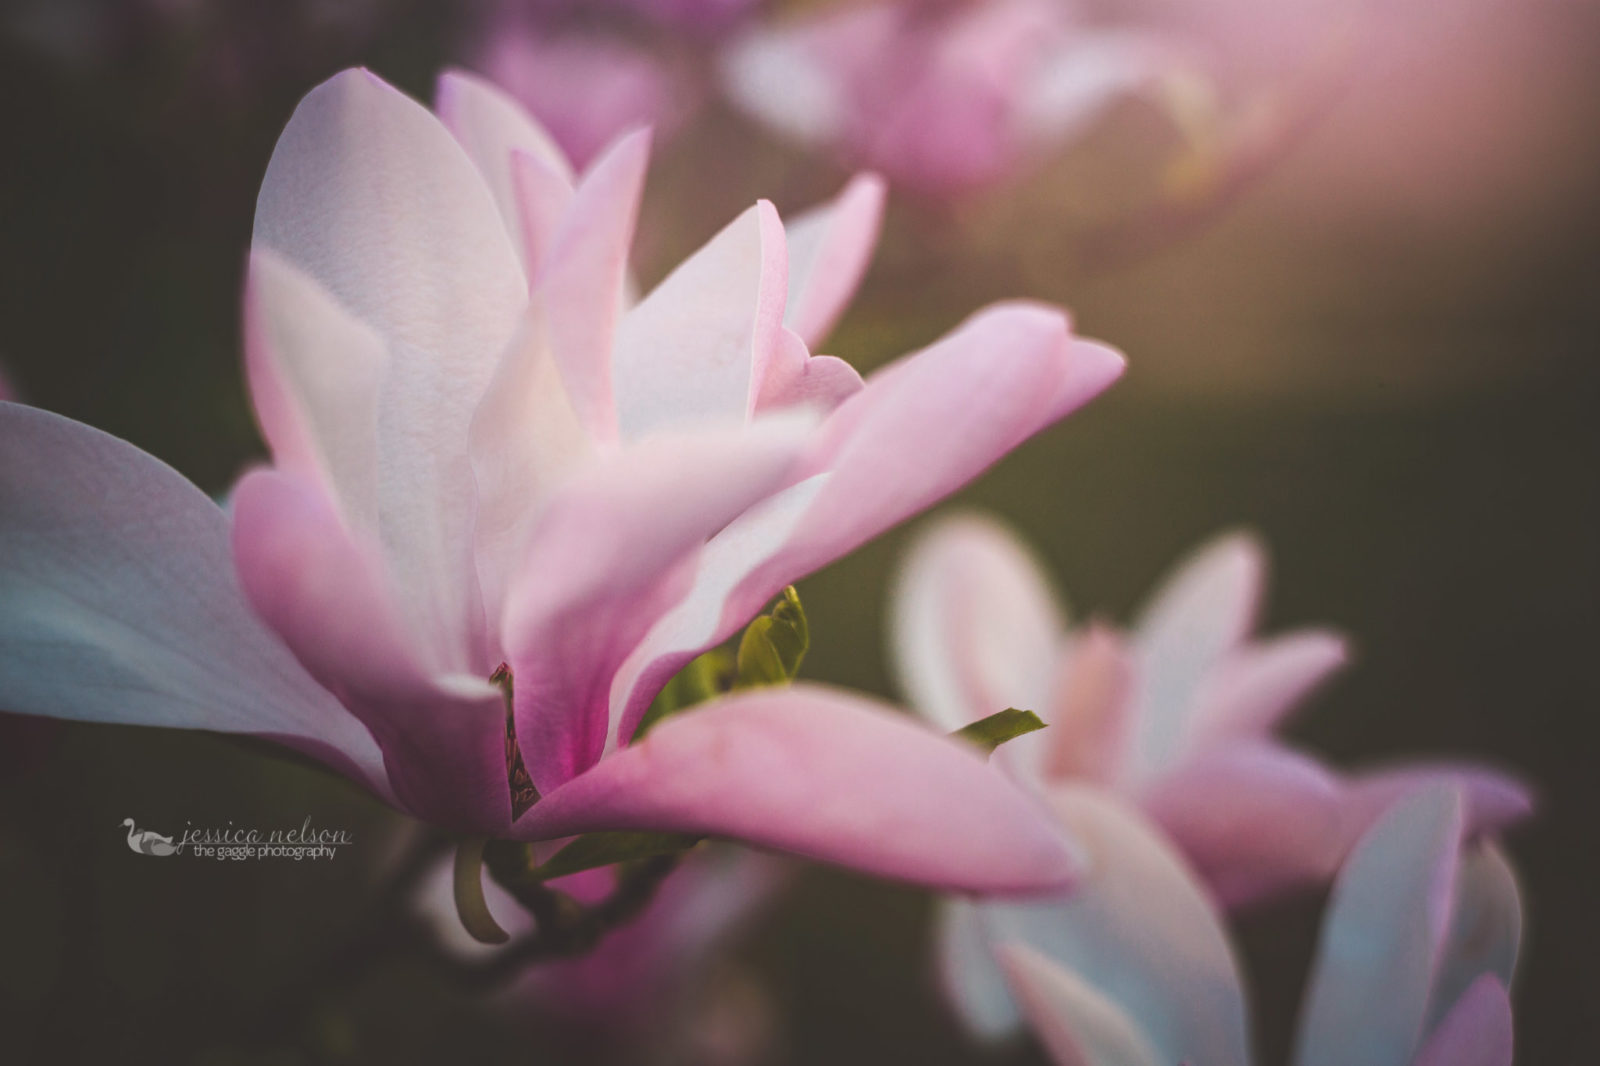 Freelensing and Blooming Magnolia